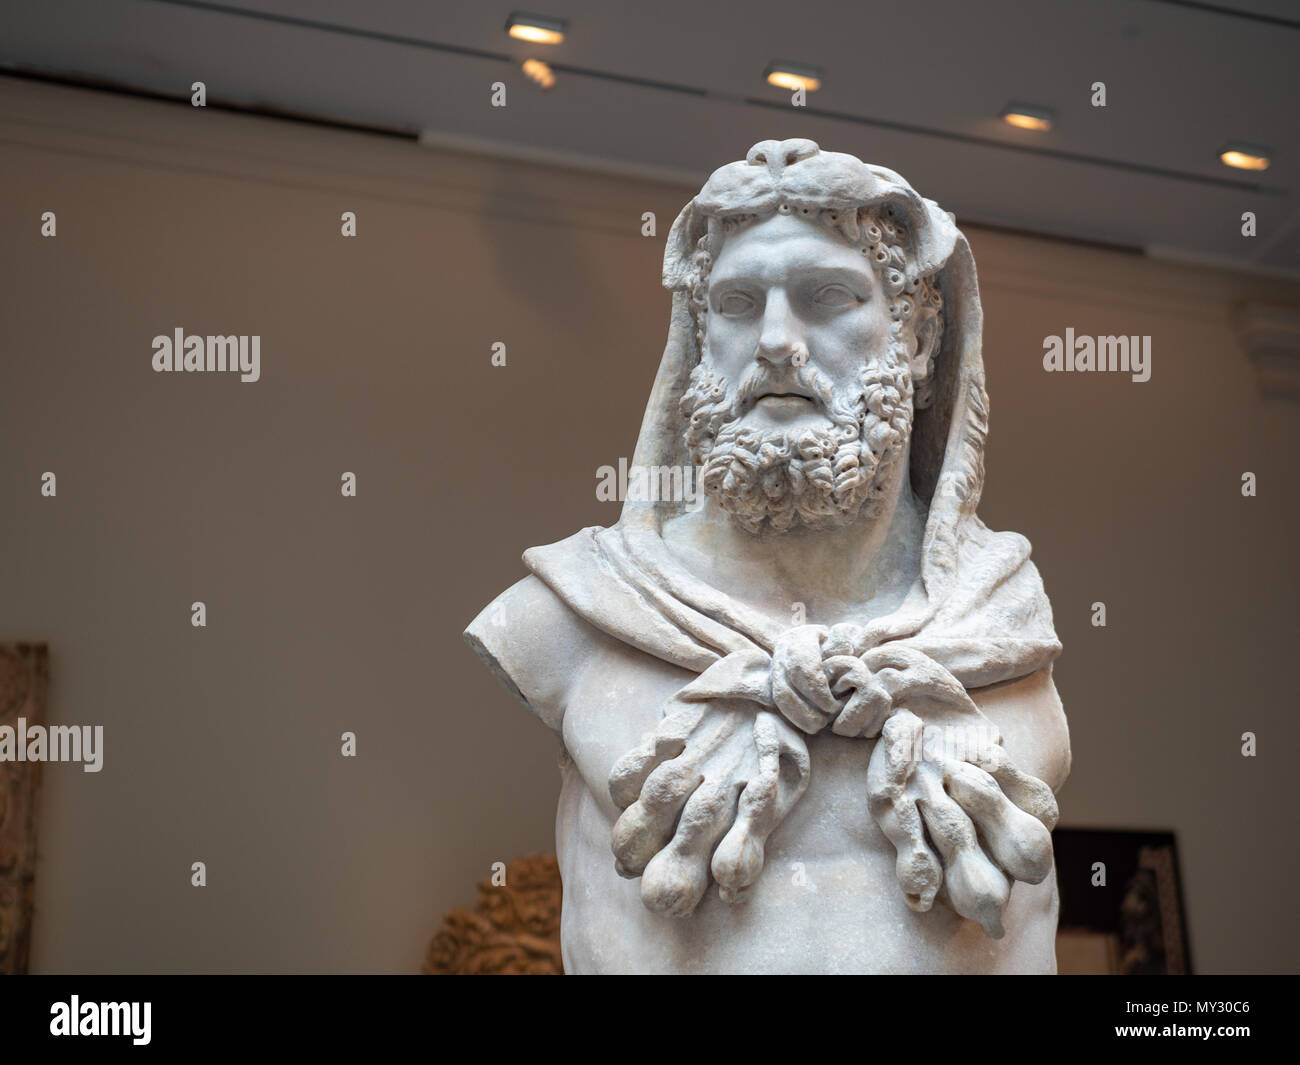 A marble statue of a bearded Hercules weating lion skin, made around 1st century A.D. in the Roman times. Stock Photo